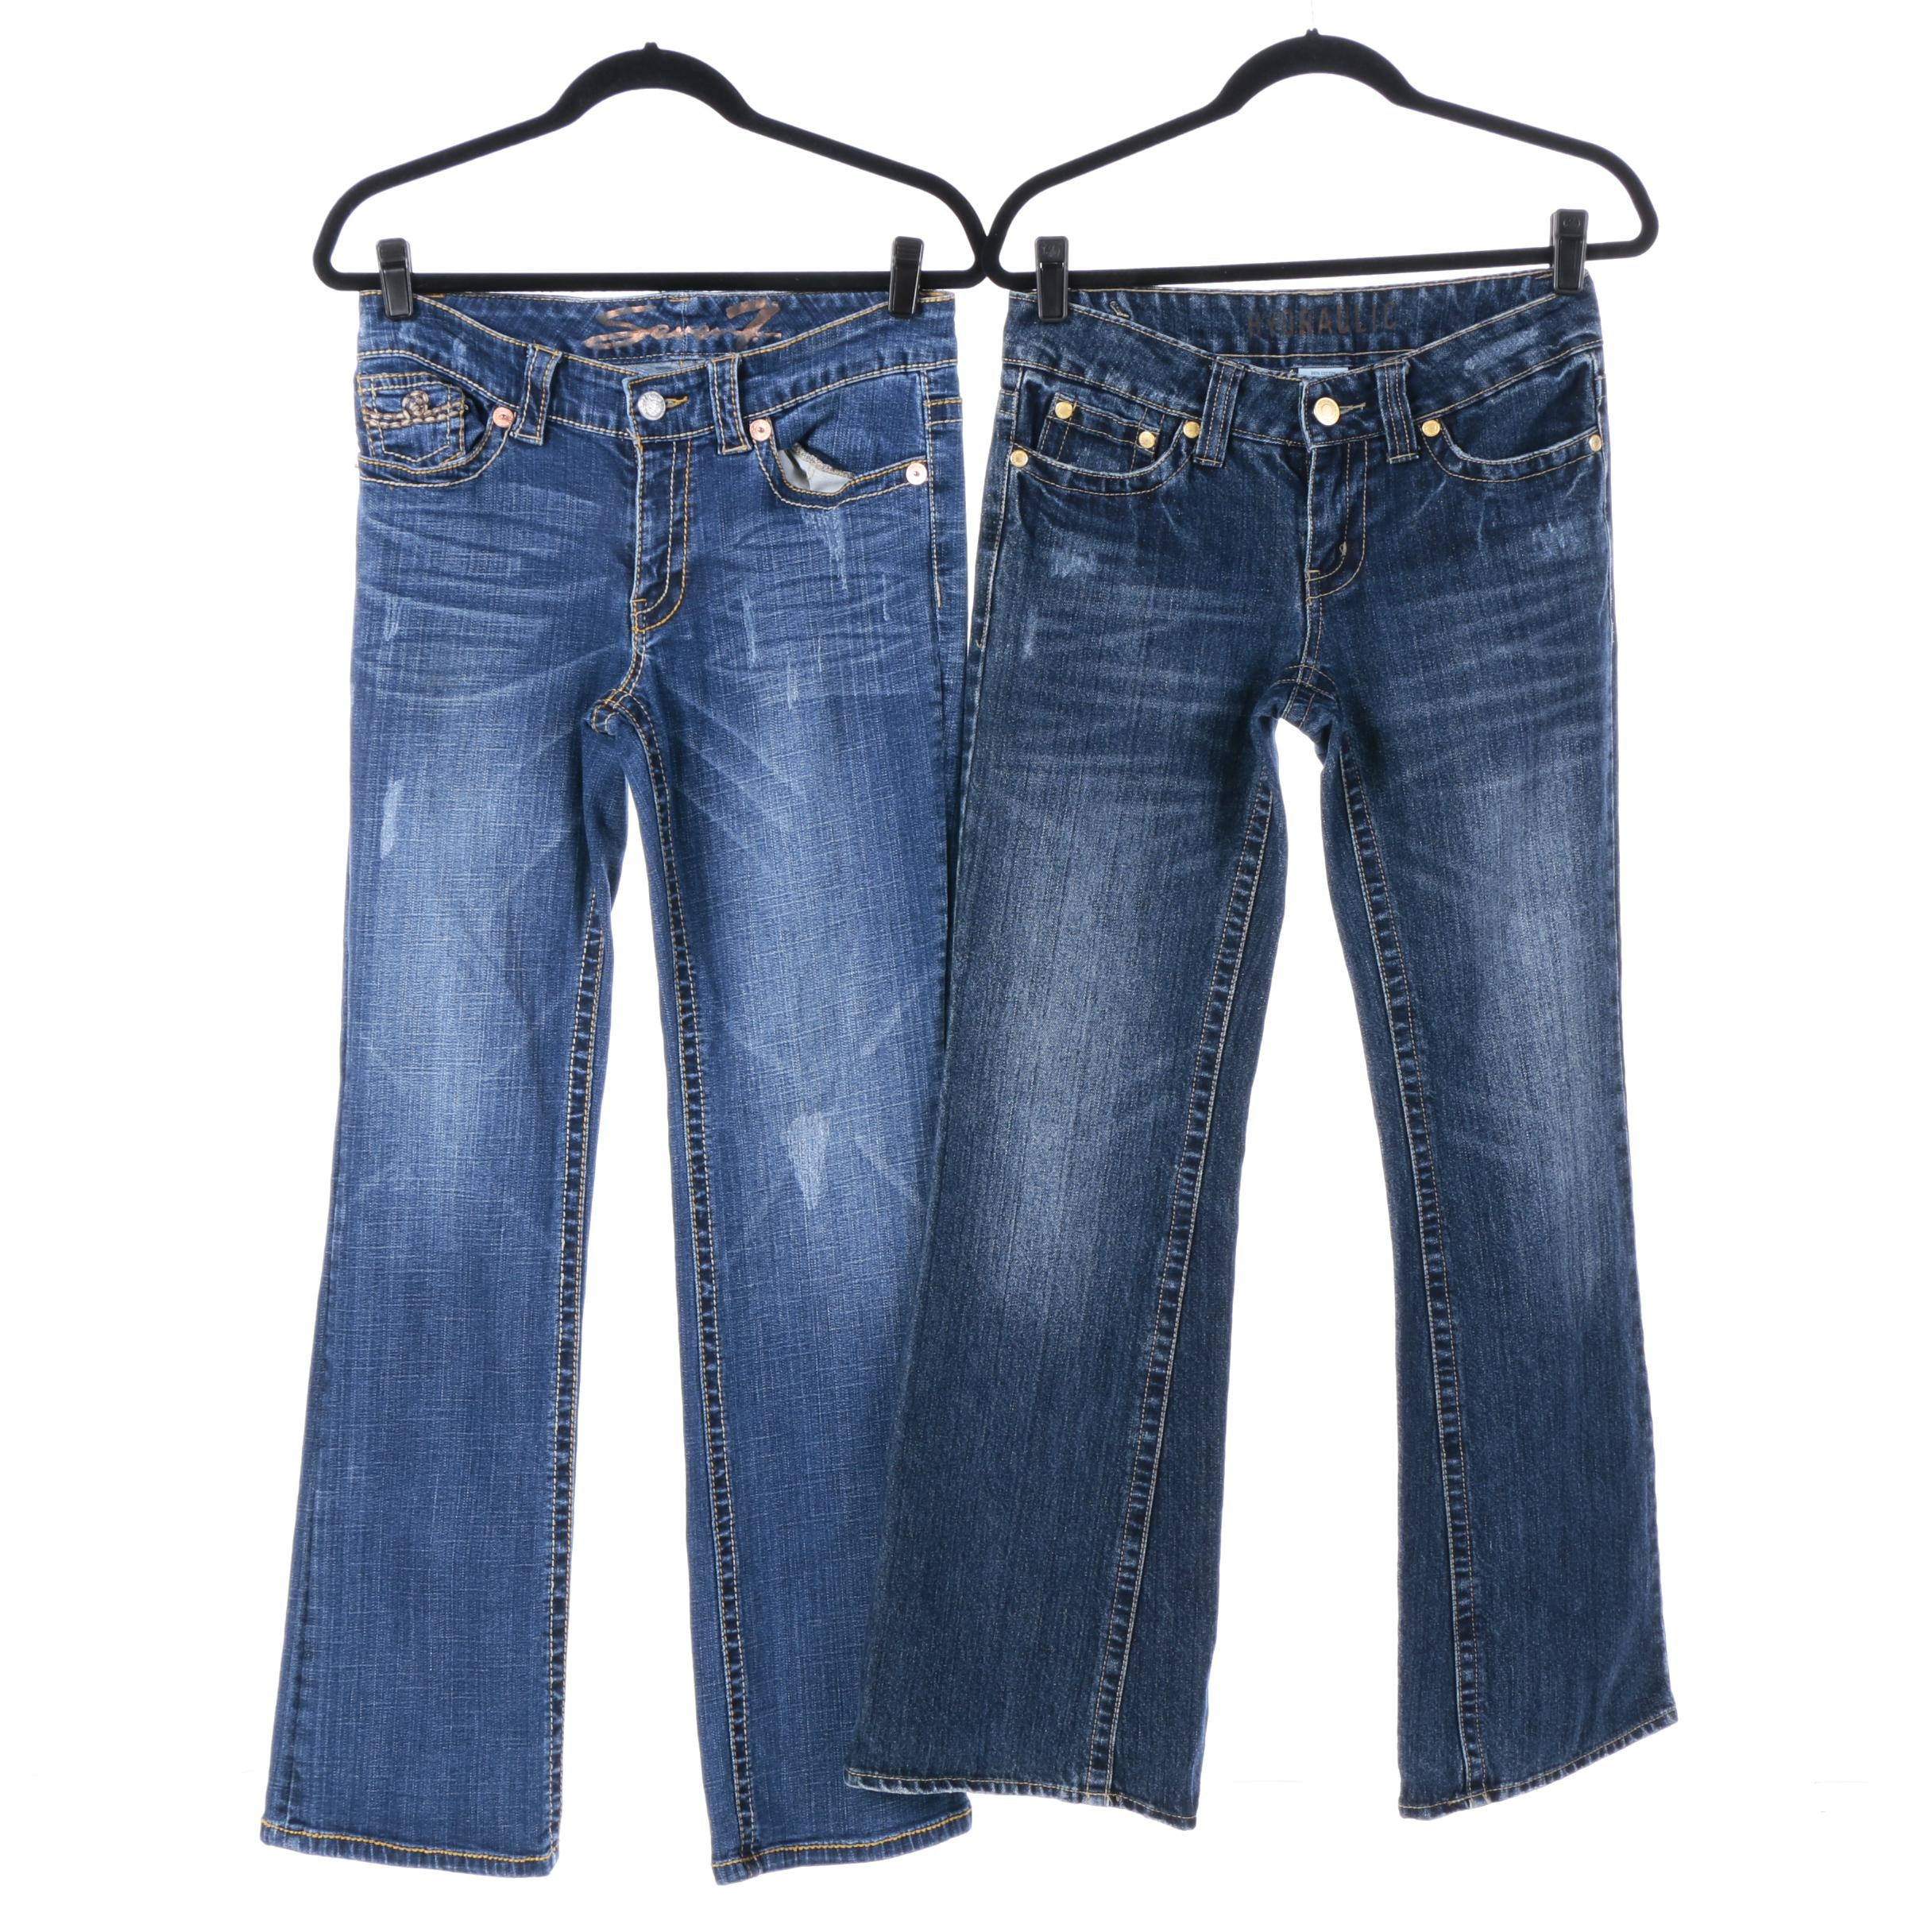 Women's Jeans Including Seven7 and Hydraulic